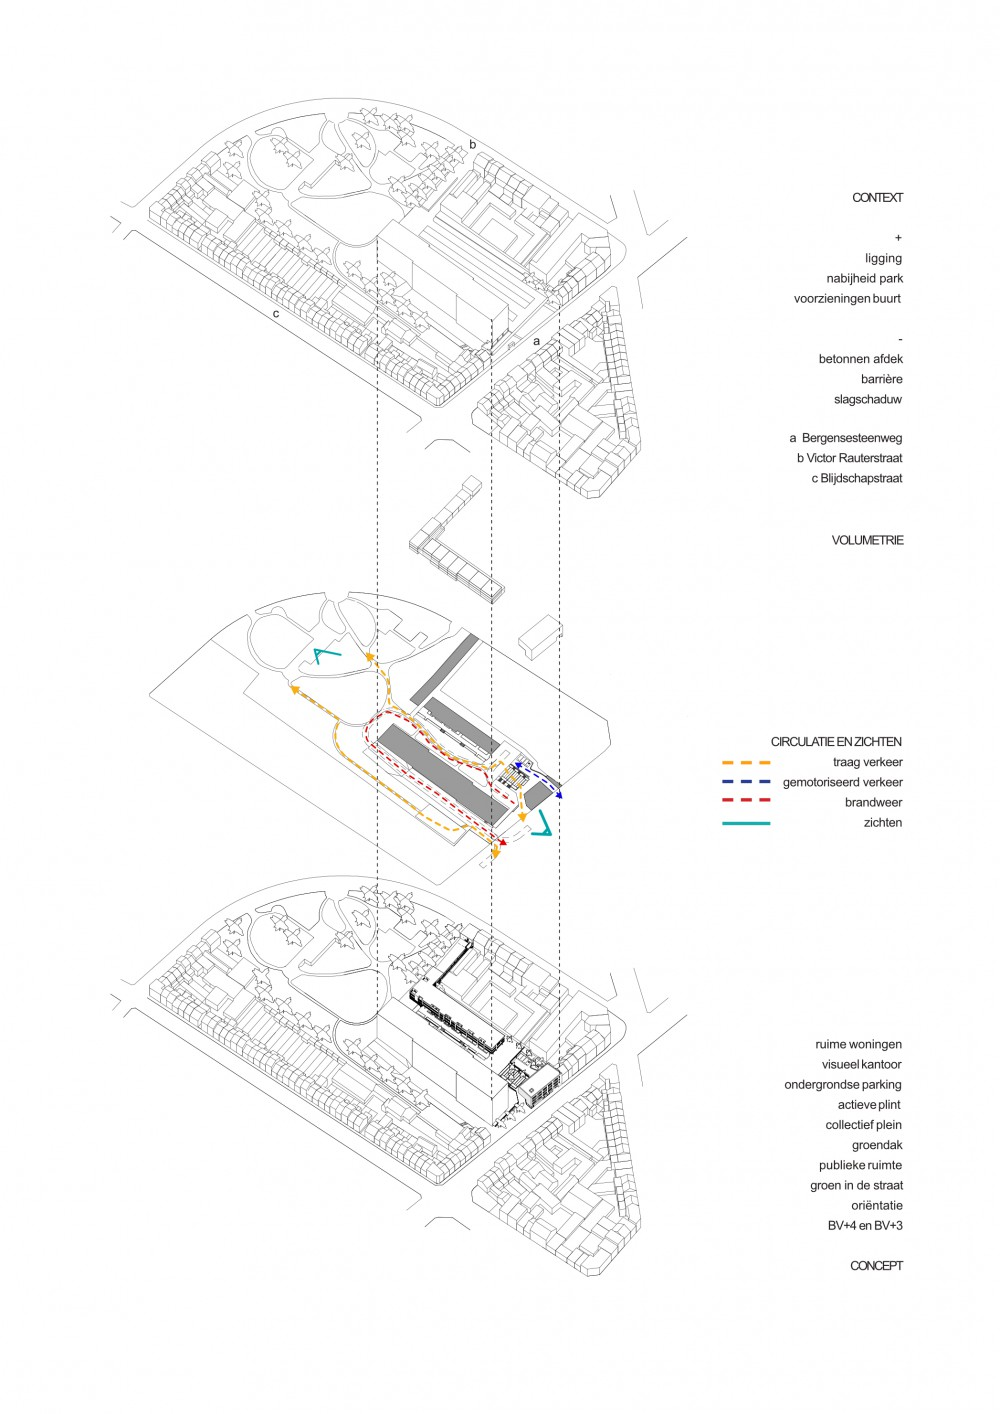 Abscis Architecten - Conceptschema - visualisatie ARCHITENKO - Urban Design and Architecture